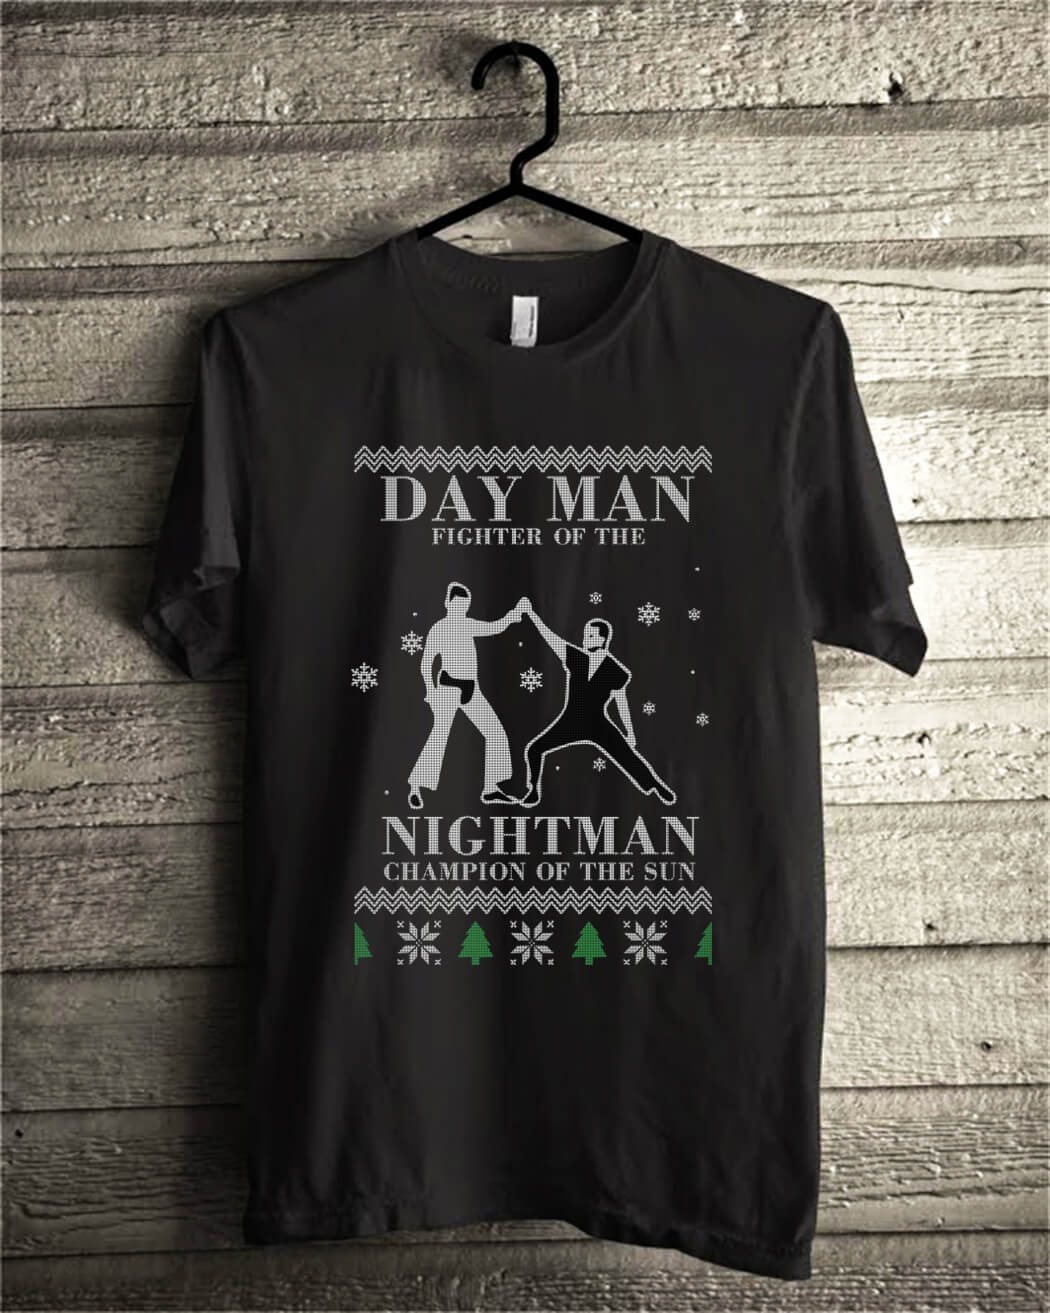 Day man fighter of the nightman champion of the sun christmas shirt